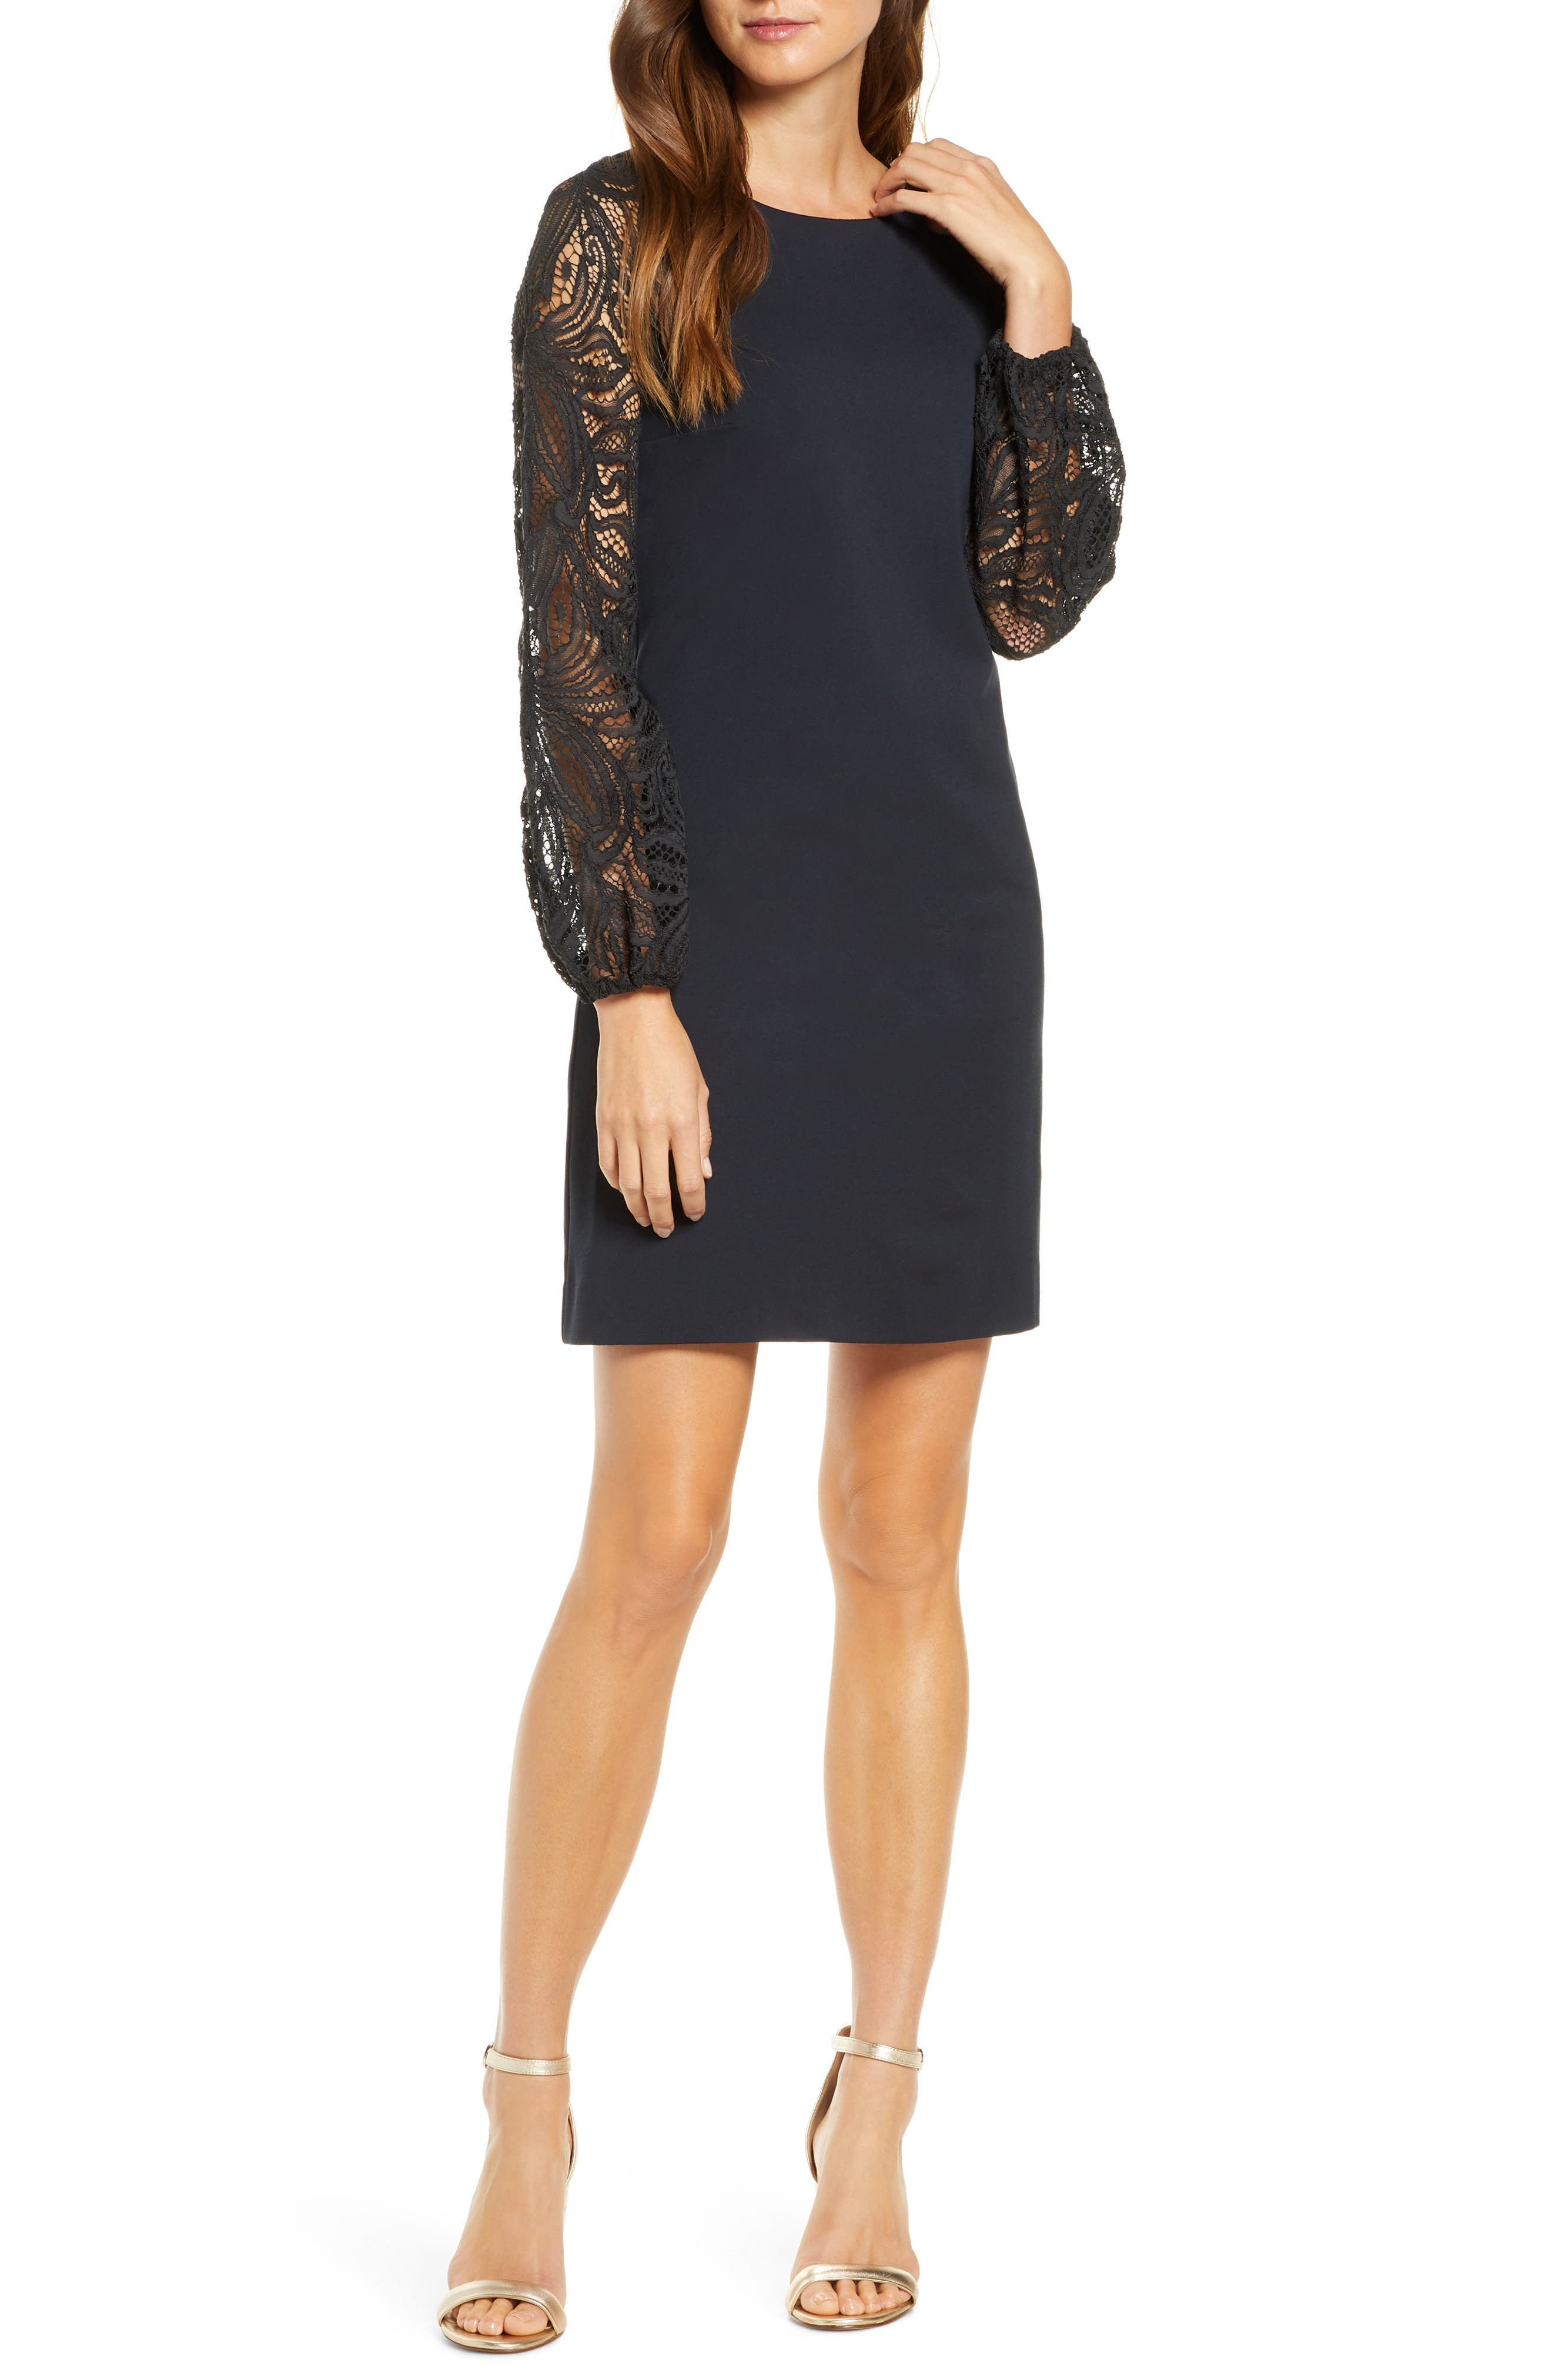 ISBN 9780003321005 product image for Women's Lilly Pulitzer Gali Lace Long Sleeve Shift Dress | upcitemdb.com